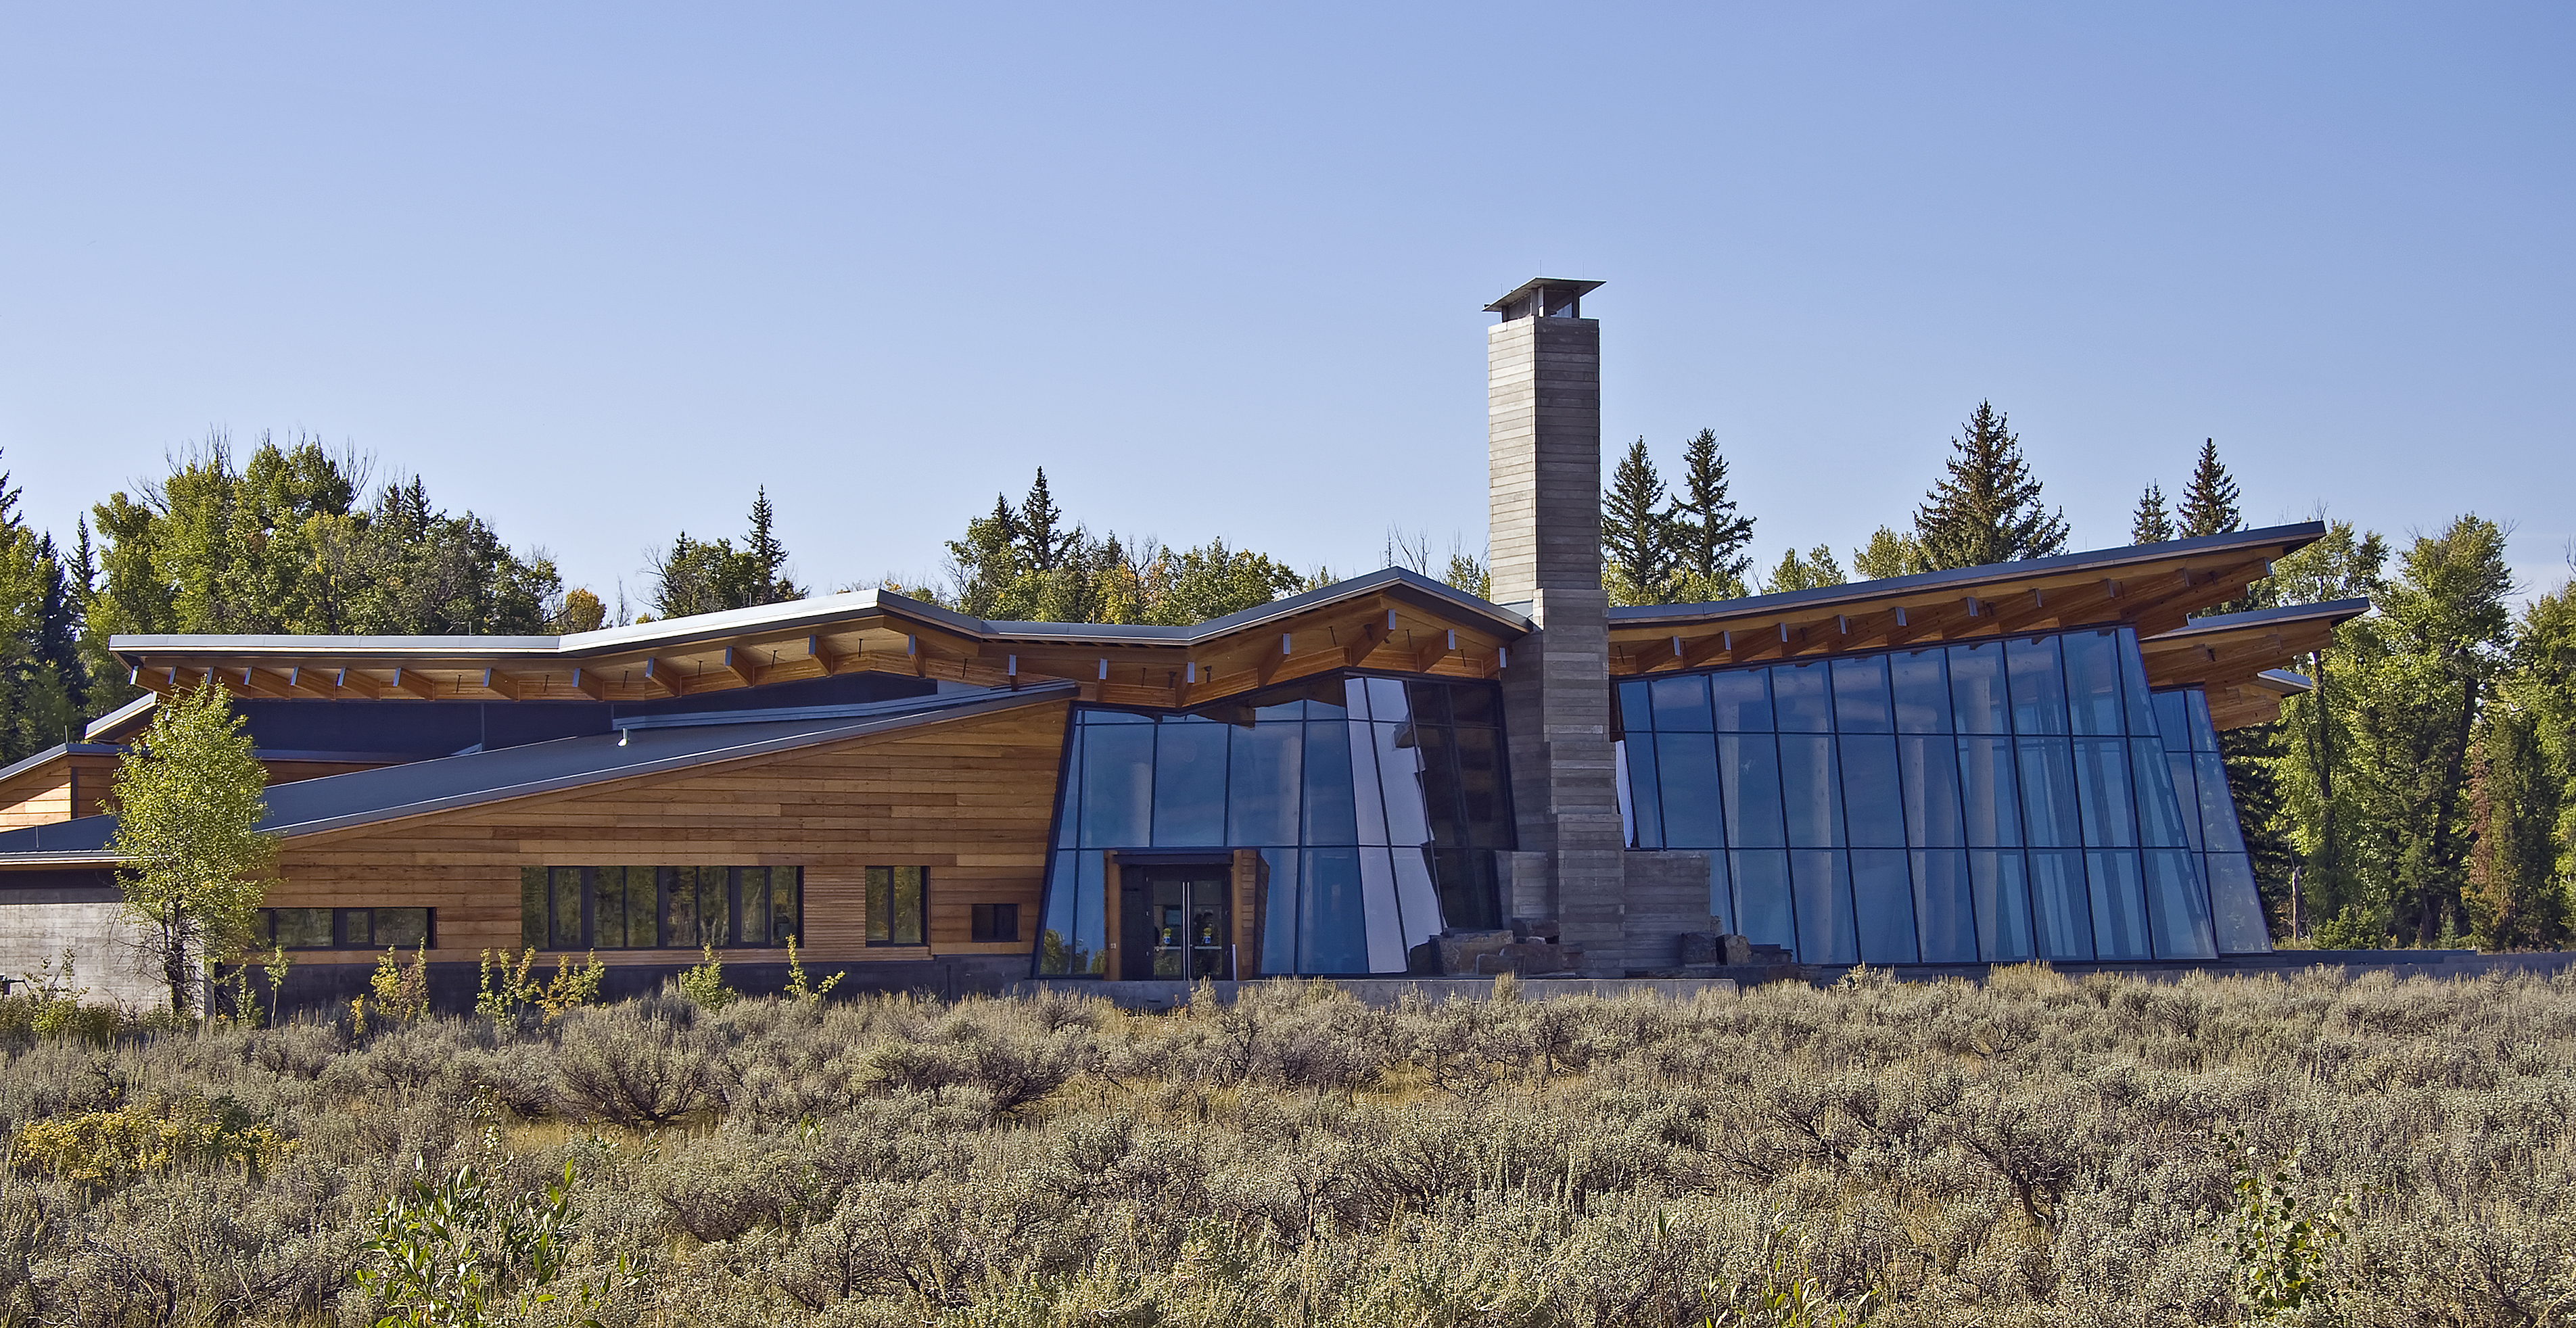 Craig Thomas Visitor Center in Grand Teton